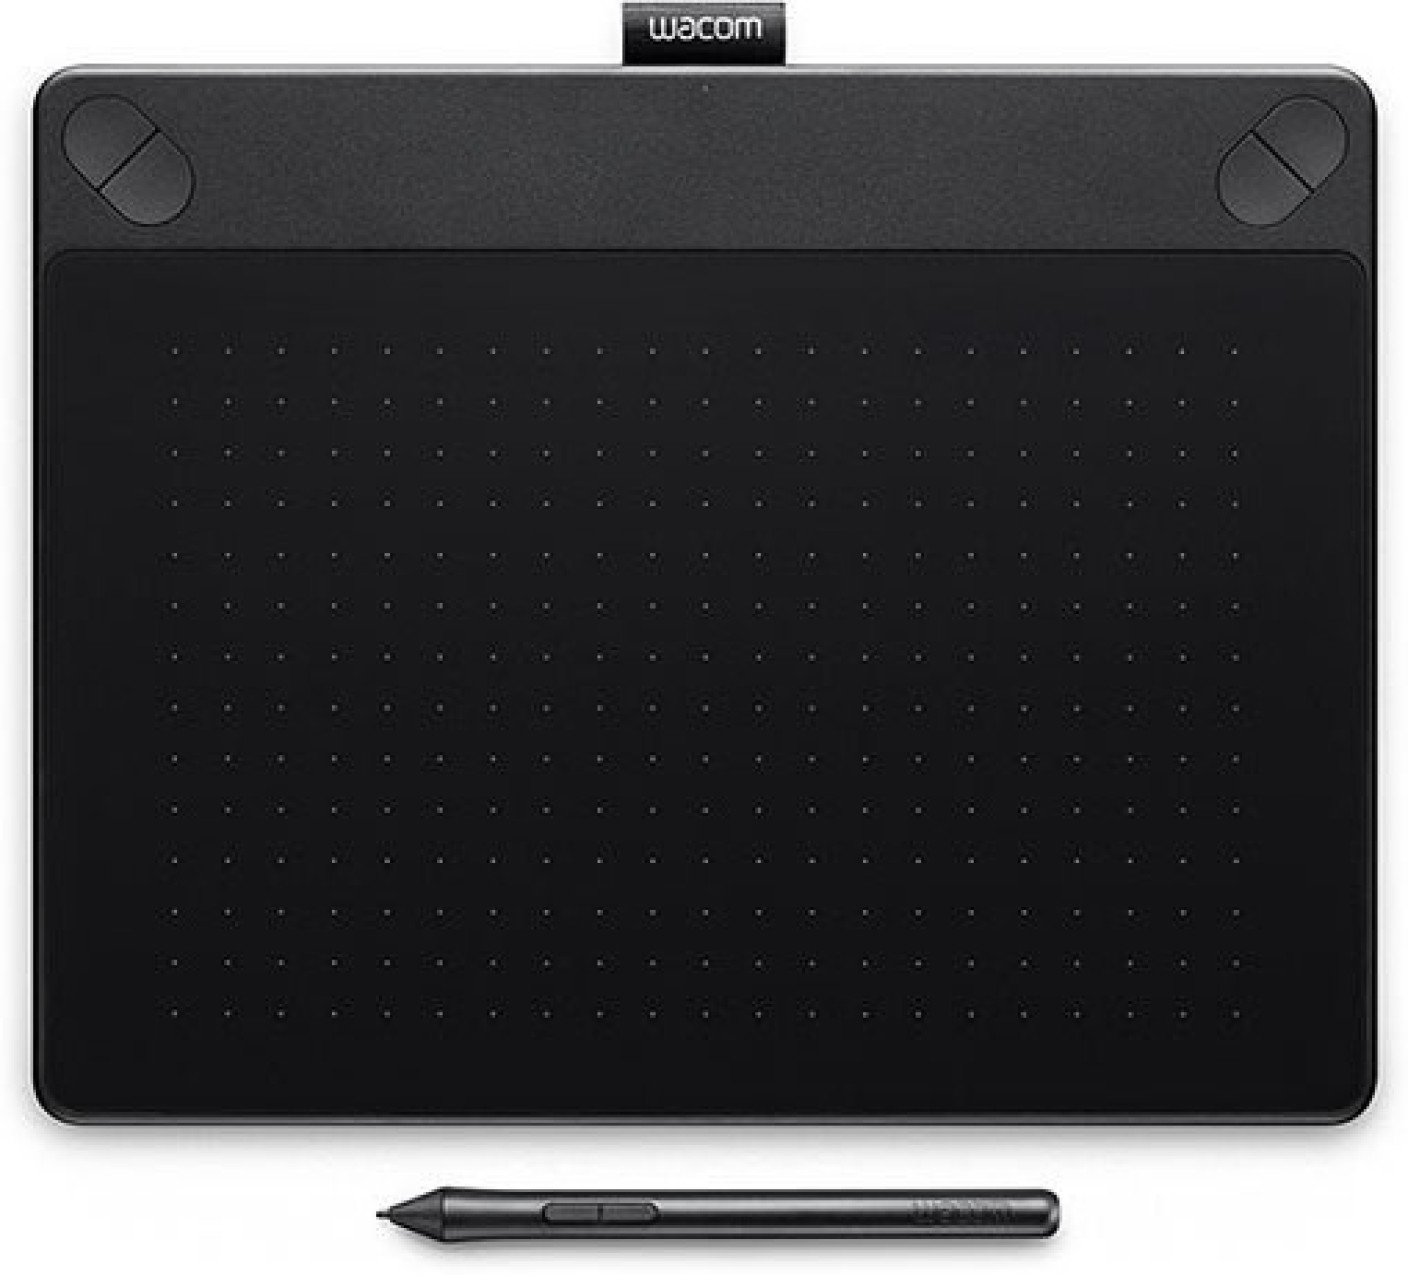 WACOM Intuos Art Pen & Touch Medium - Black CTH690AK 10.8 x 8.5 inch Graphics  Tablet. Share